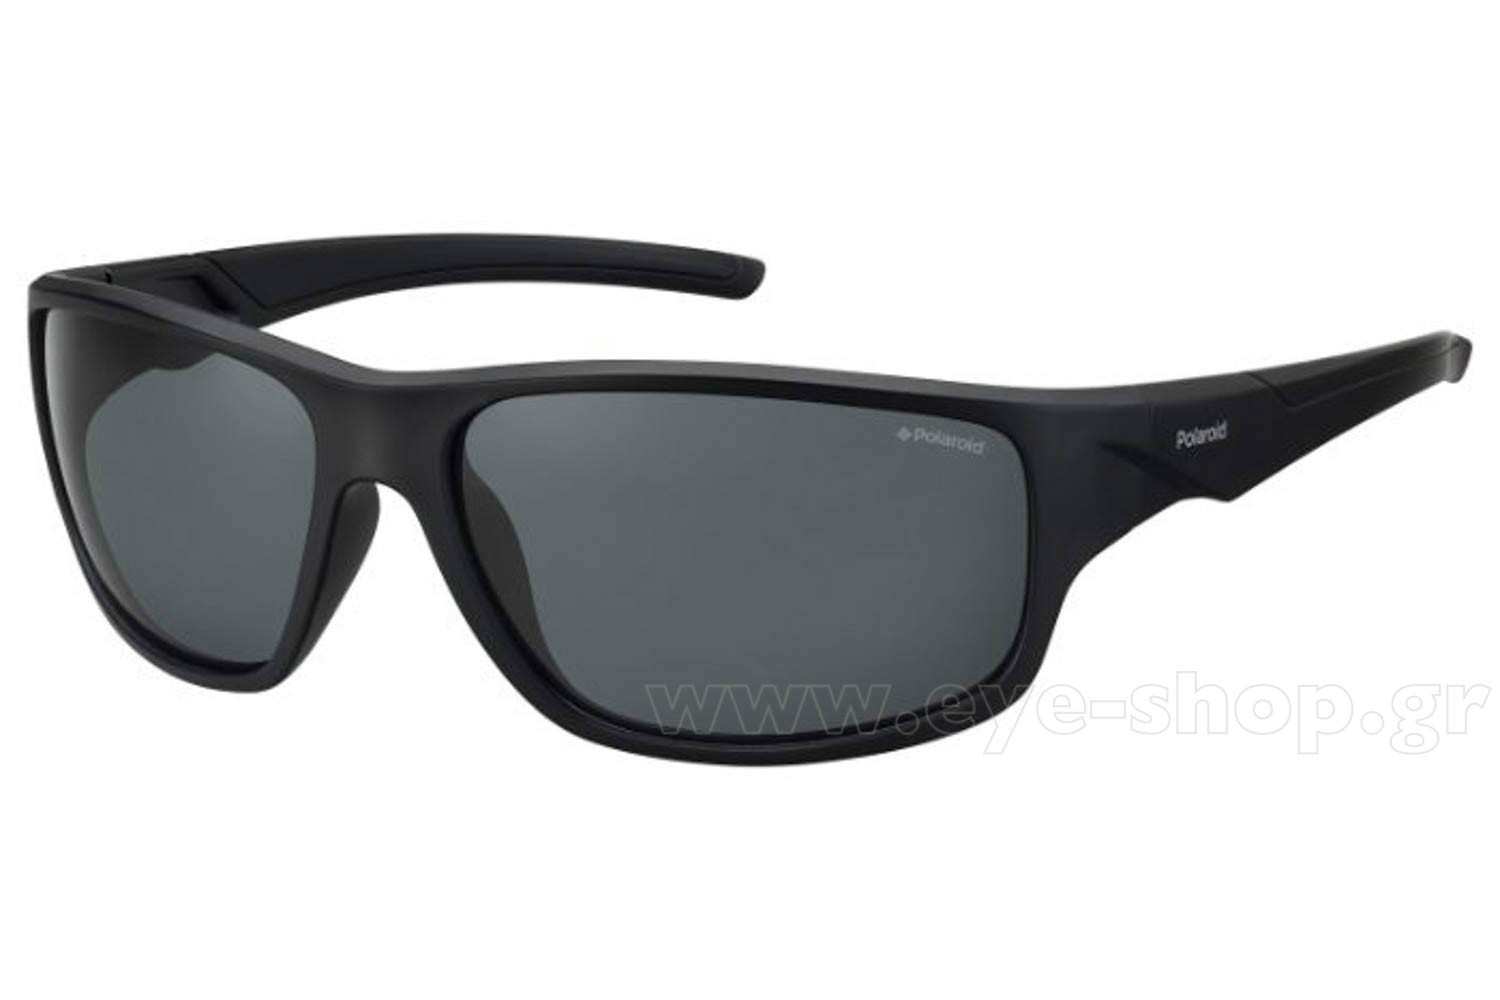 Γυαλιά Polaroid PLD 7010 S 807 (M9) polarized